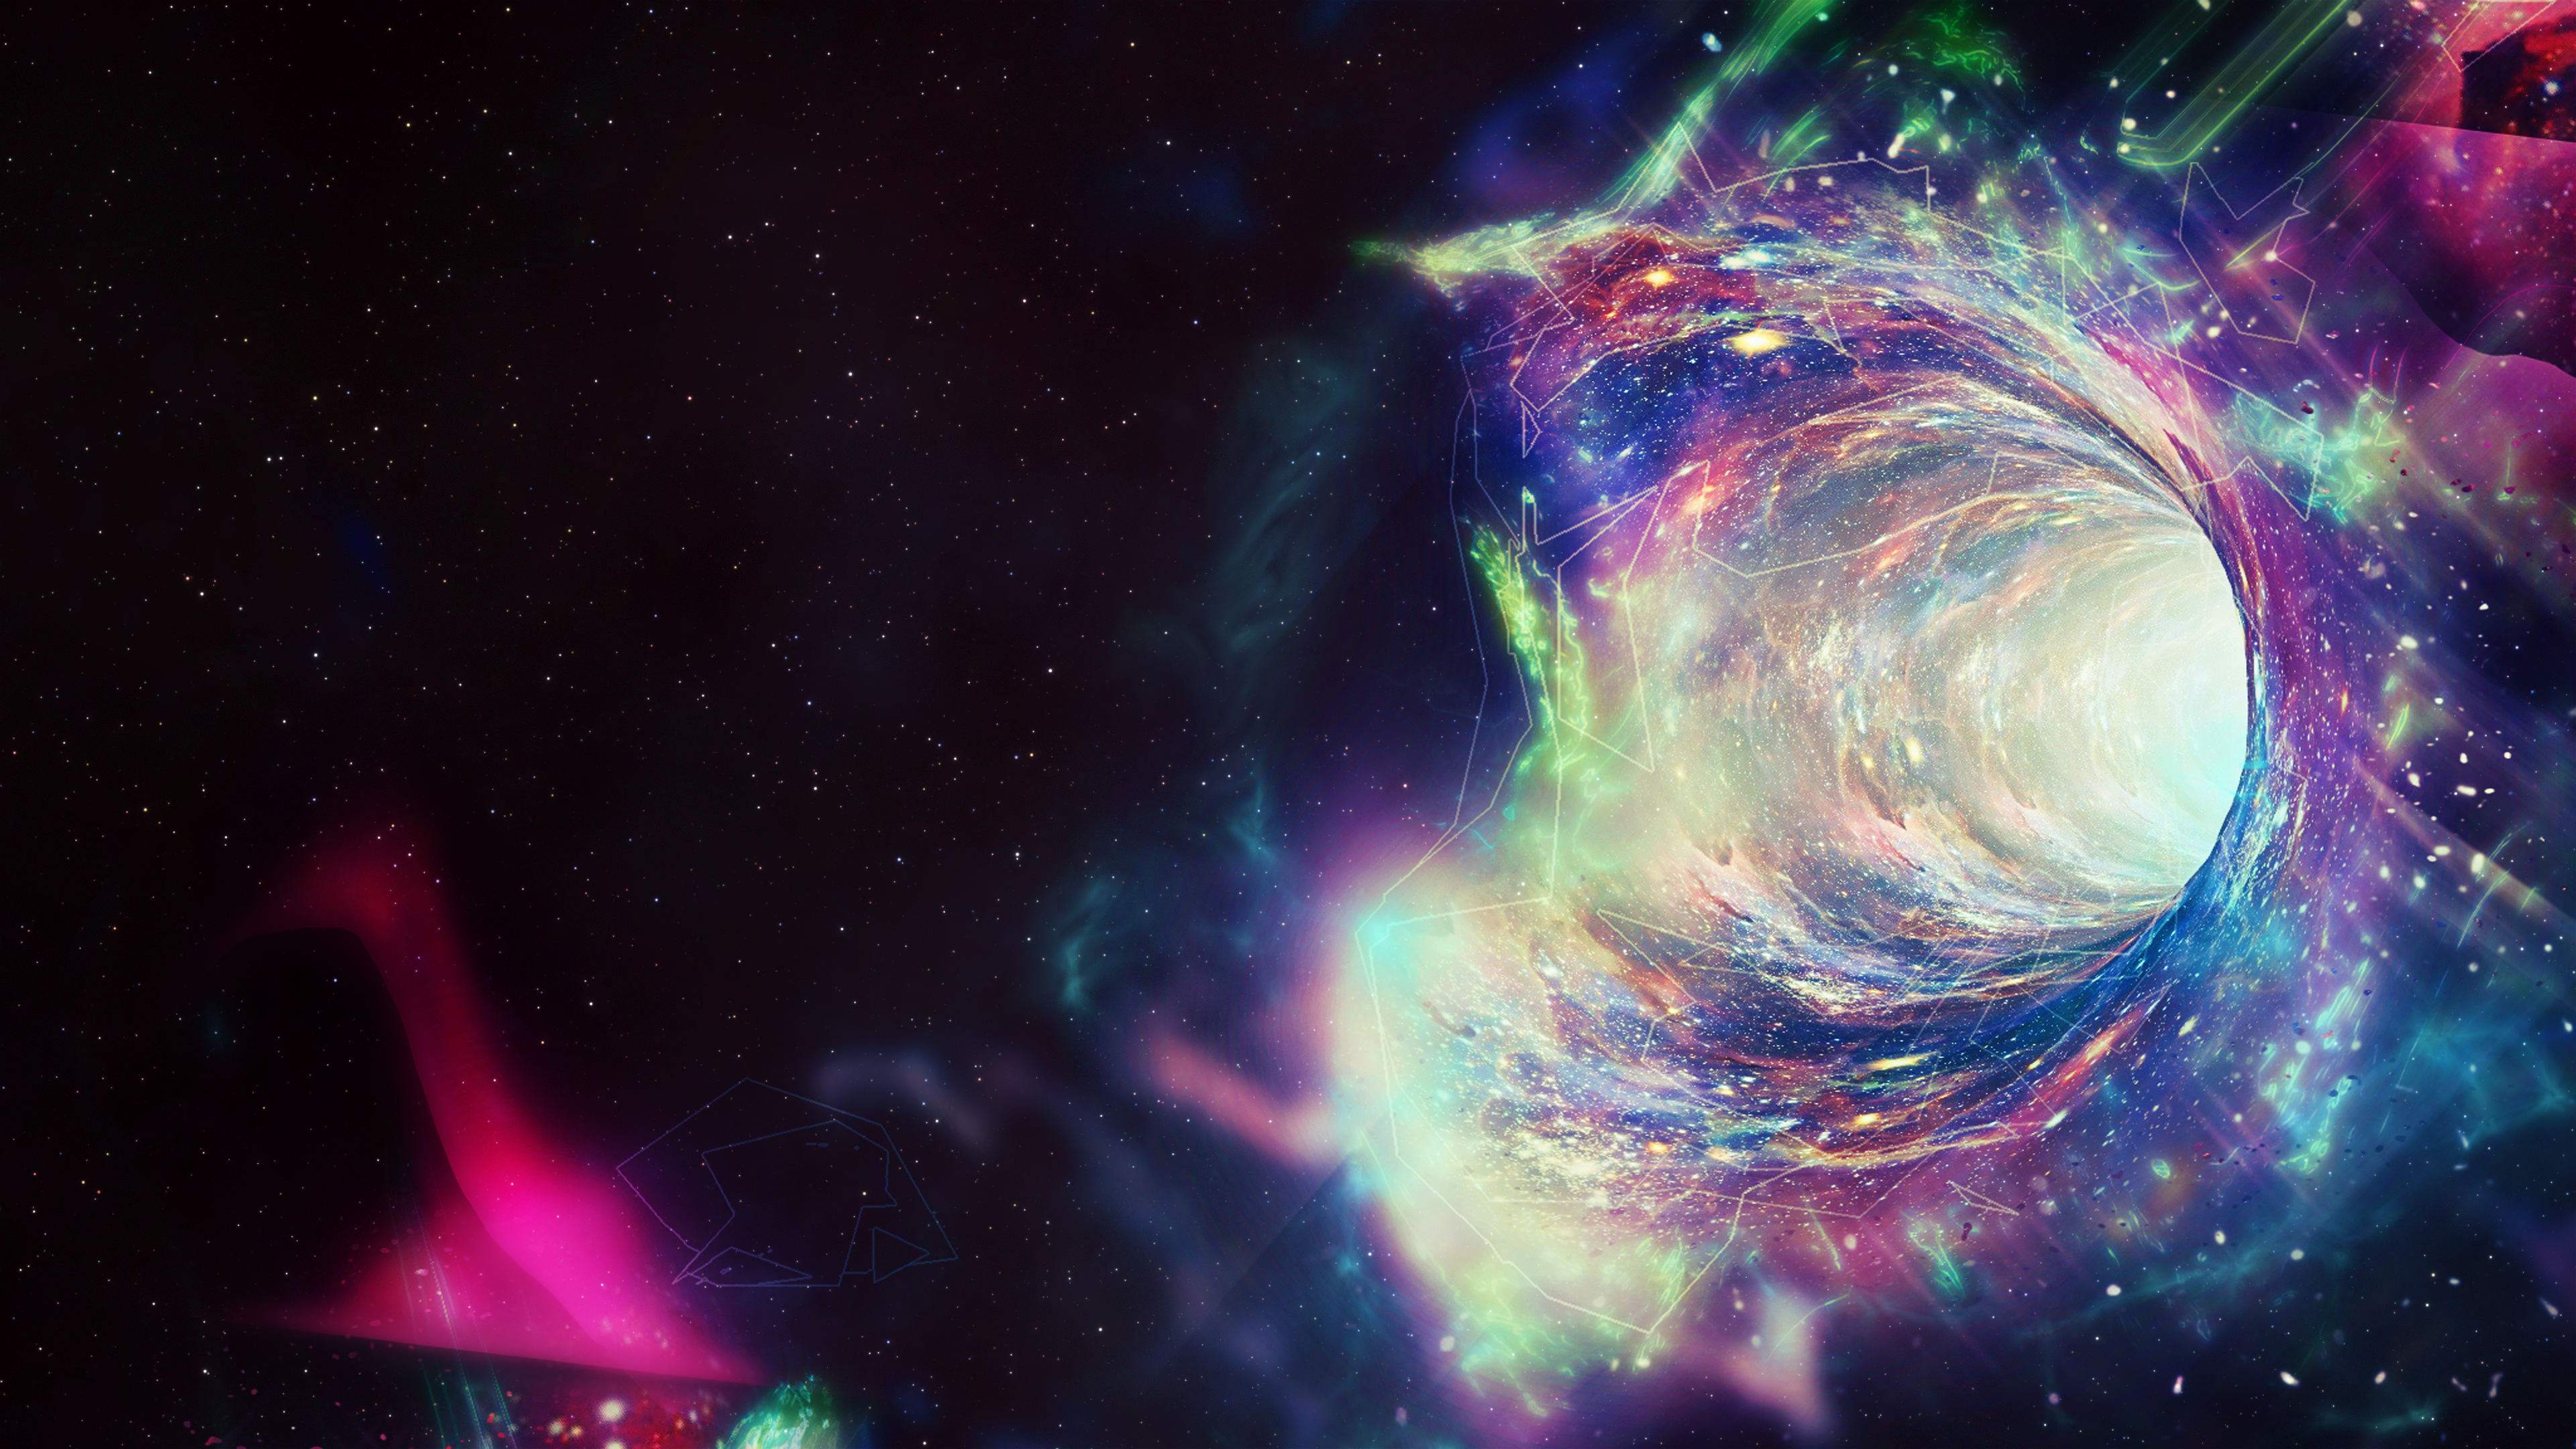 Wallpaper For Pc Space